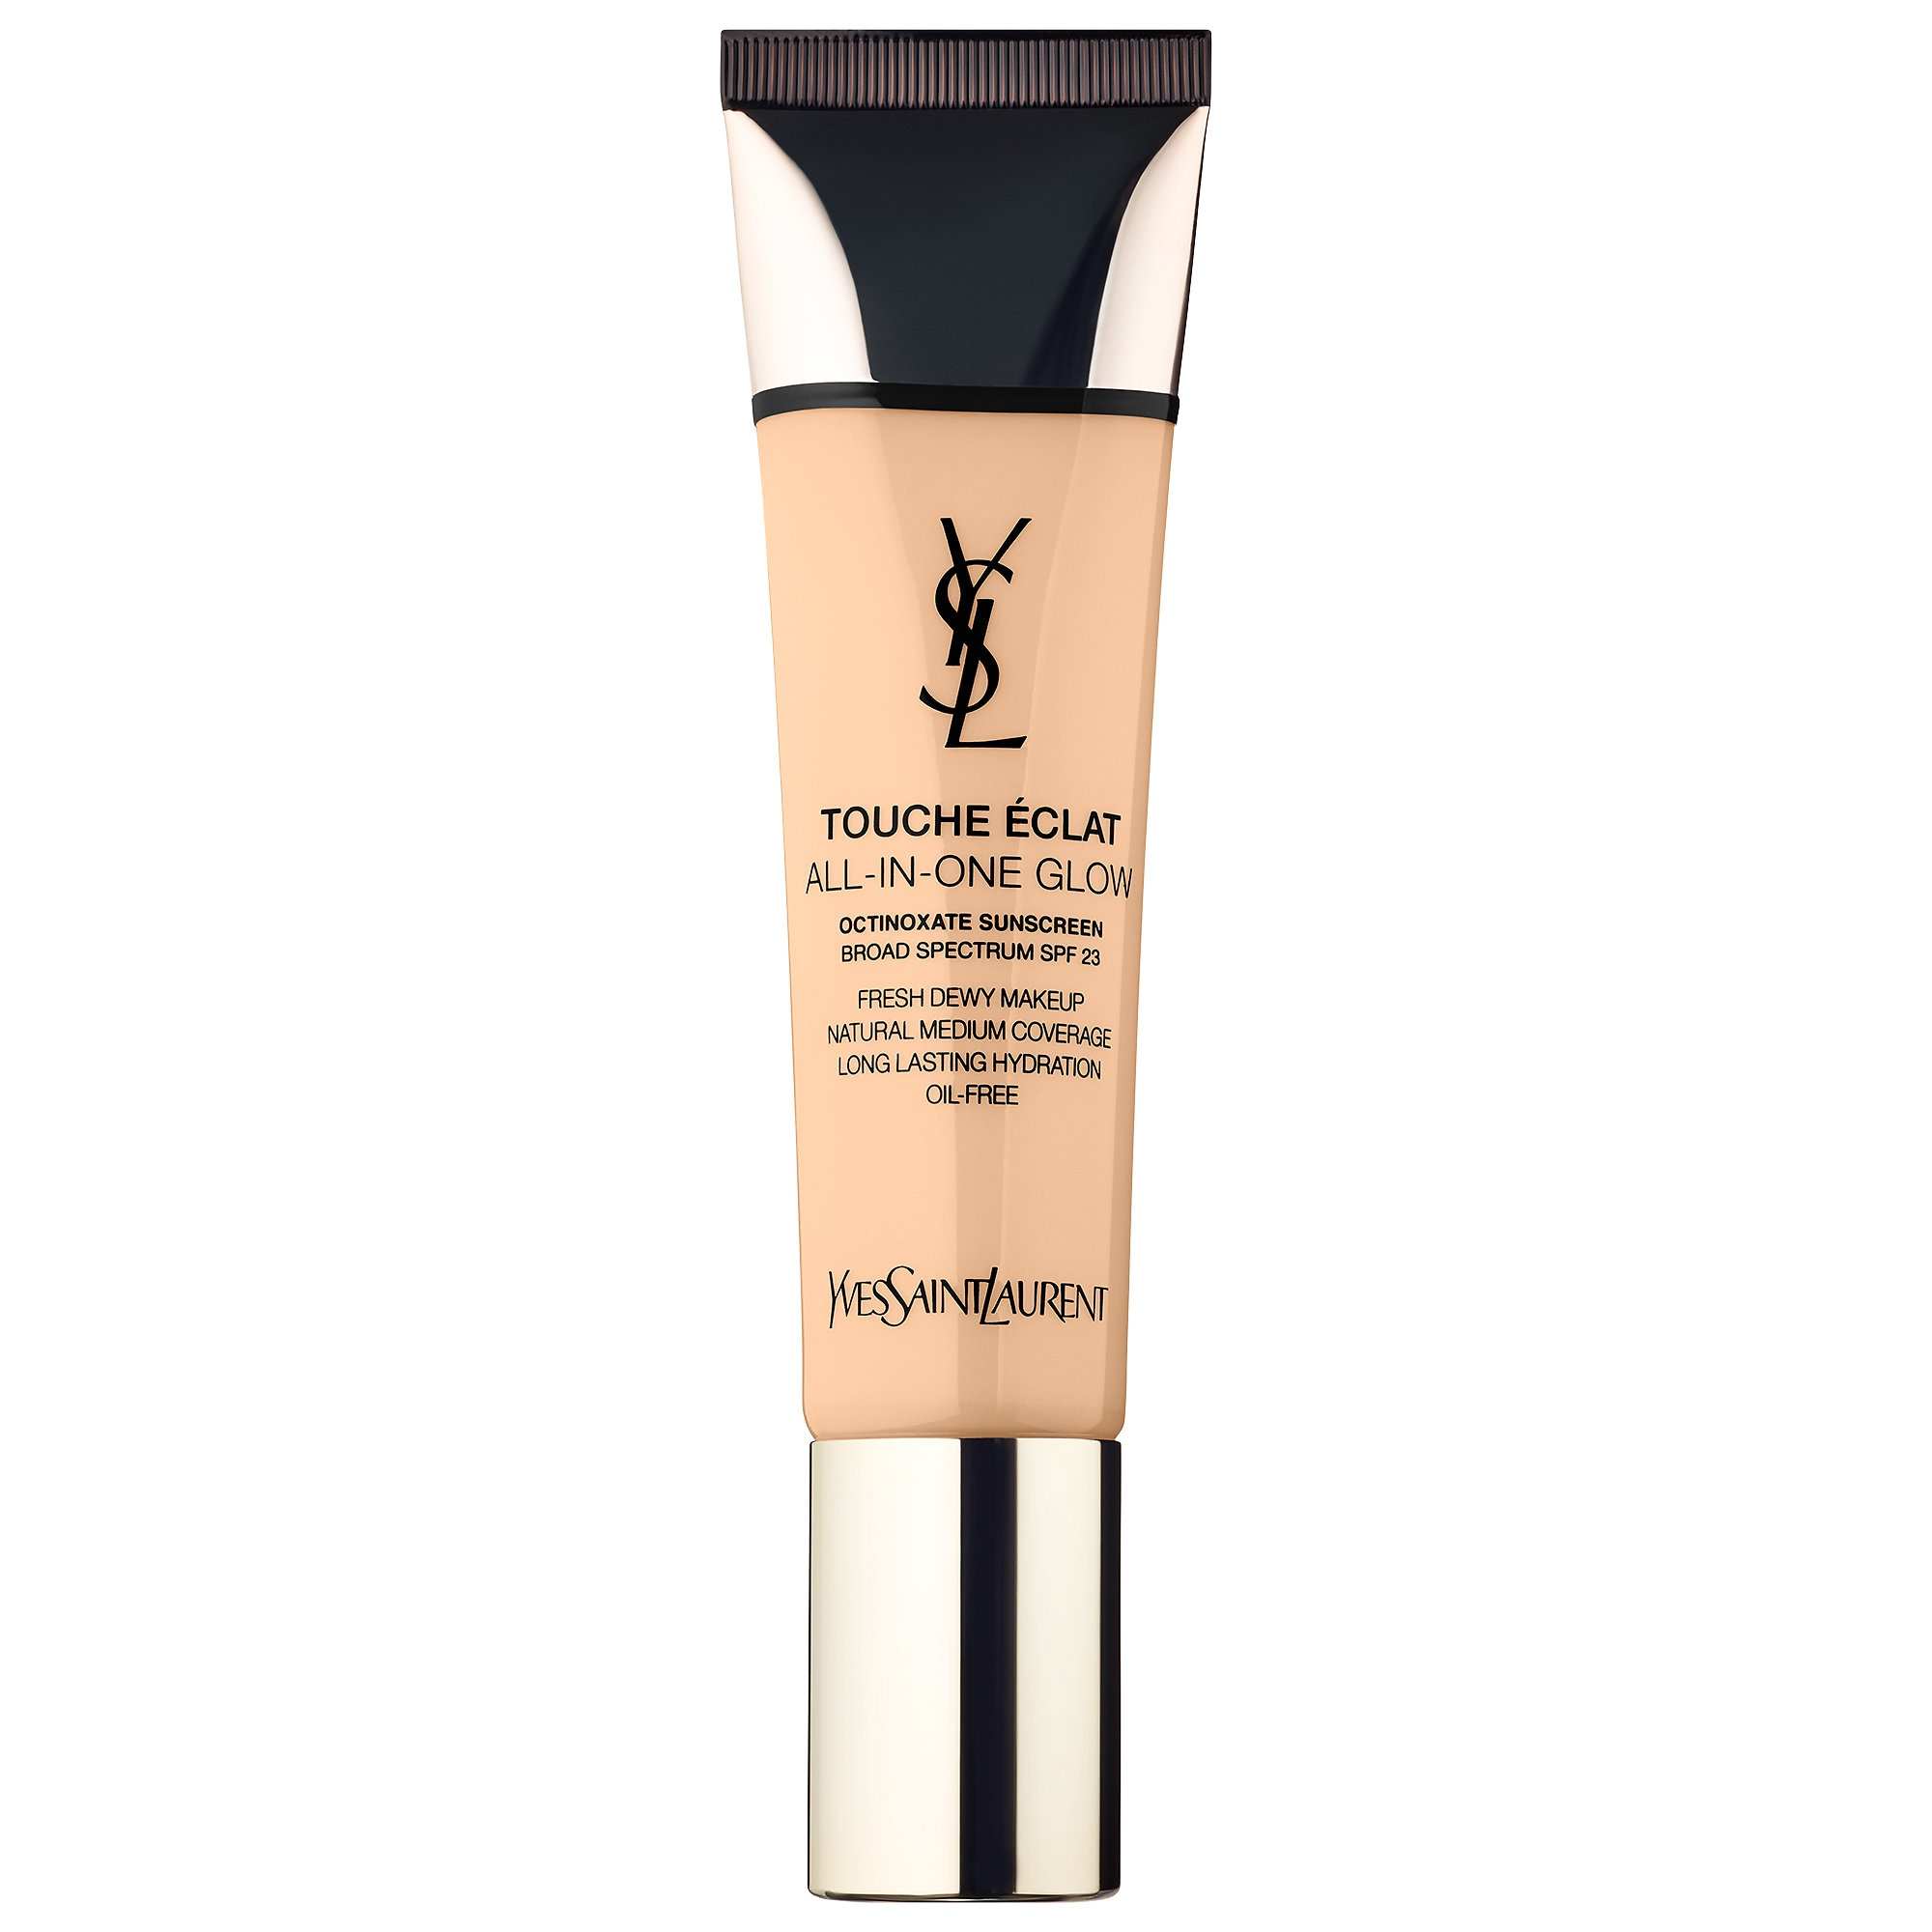 Yves Saint Laurent - Touche Eclat All-In-One Glow